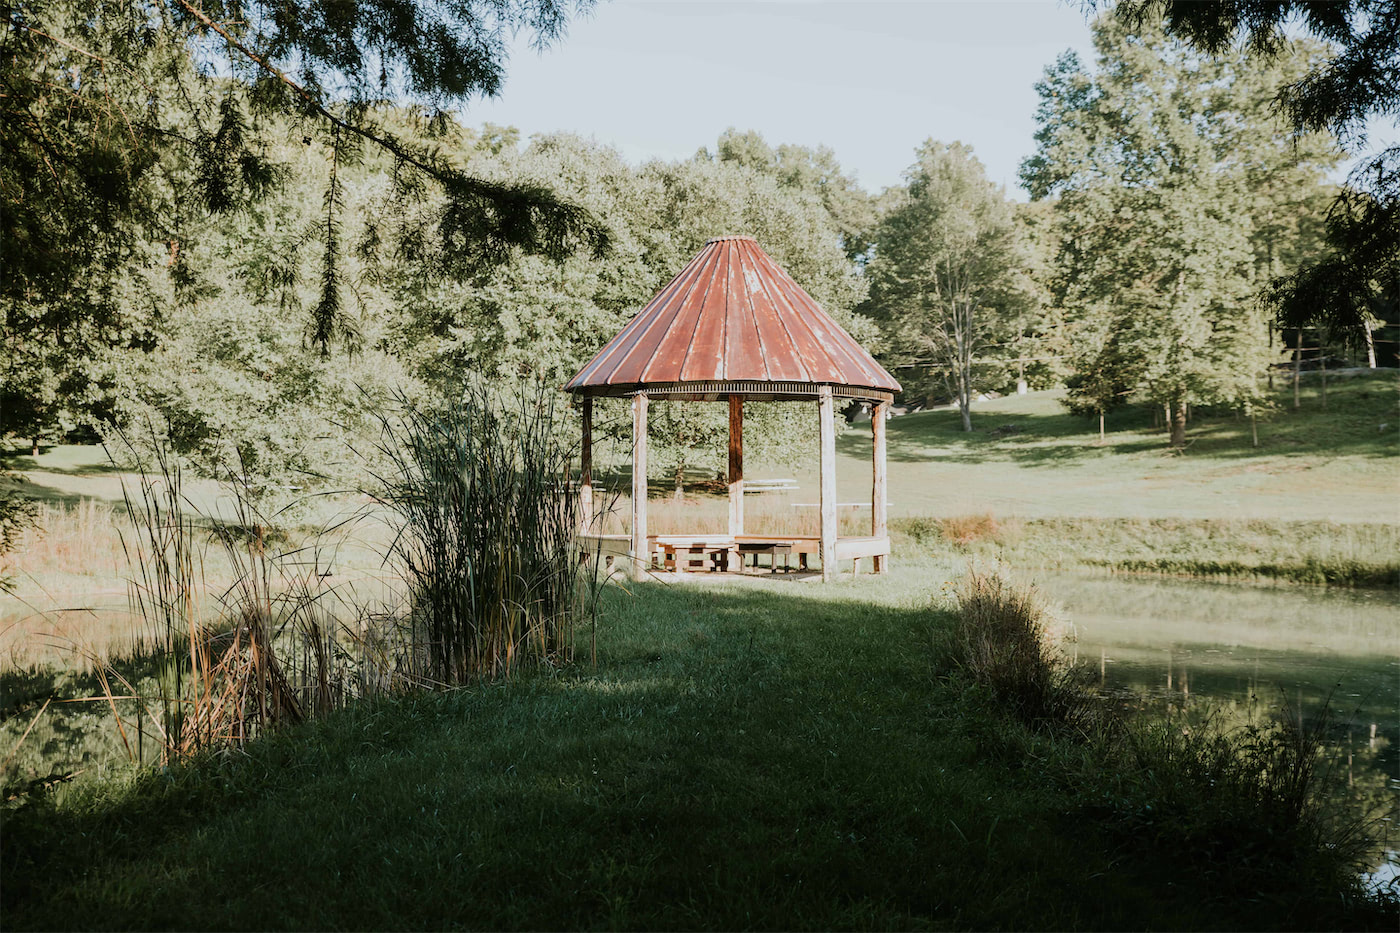 heston hills gazebo for weddings and corporate parties